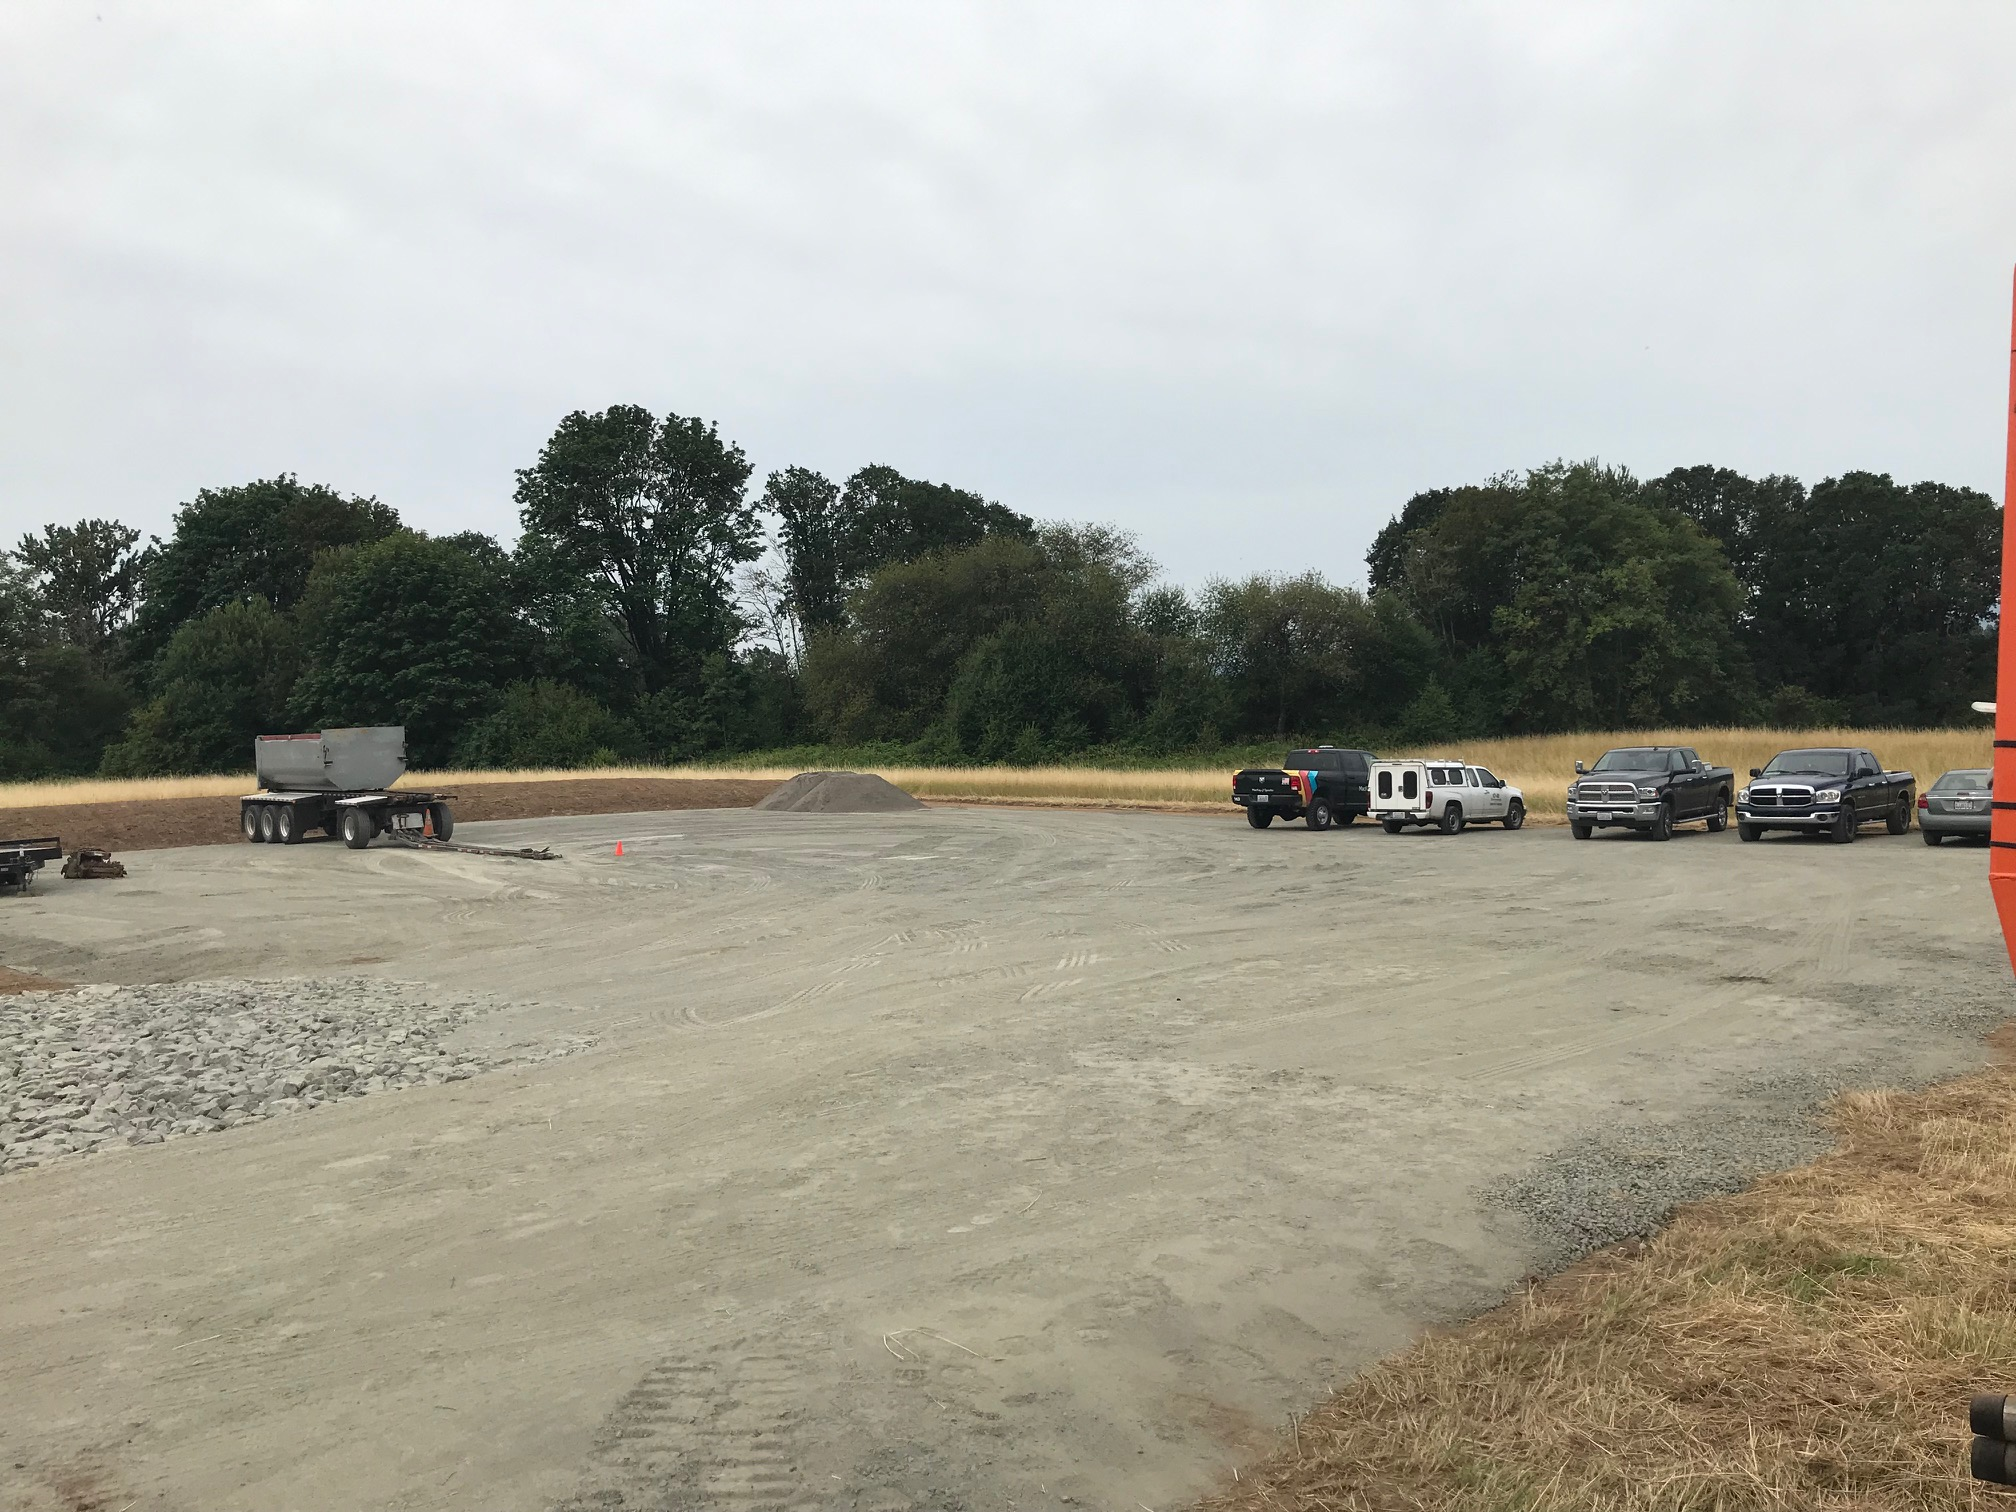 This curious gravel pad at the Carty Unit entrance is a staging area for the Main Avenue Project crew. They'll be able to store their equipment without using what is already limited Refuge parking space. BONUS FACT: The gravel pad was created with a membrane underneath, meaning the gravel can be completely removed at the end of the project and vegetation easily replanted in that area.